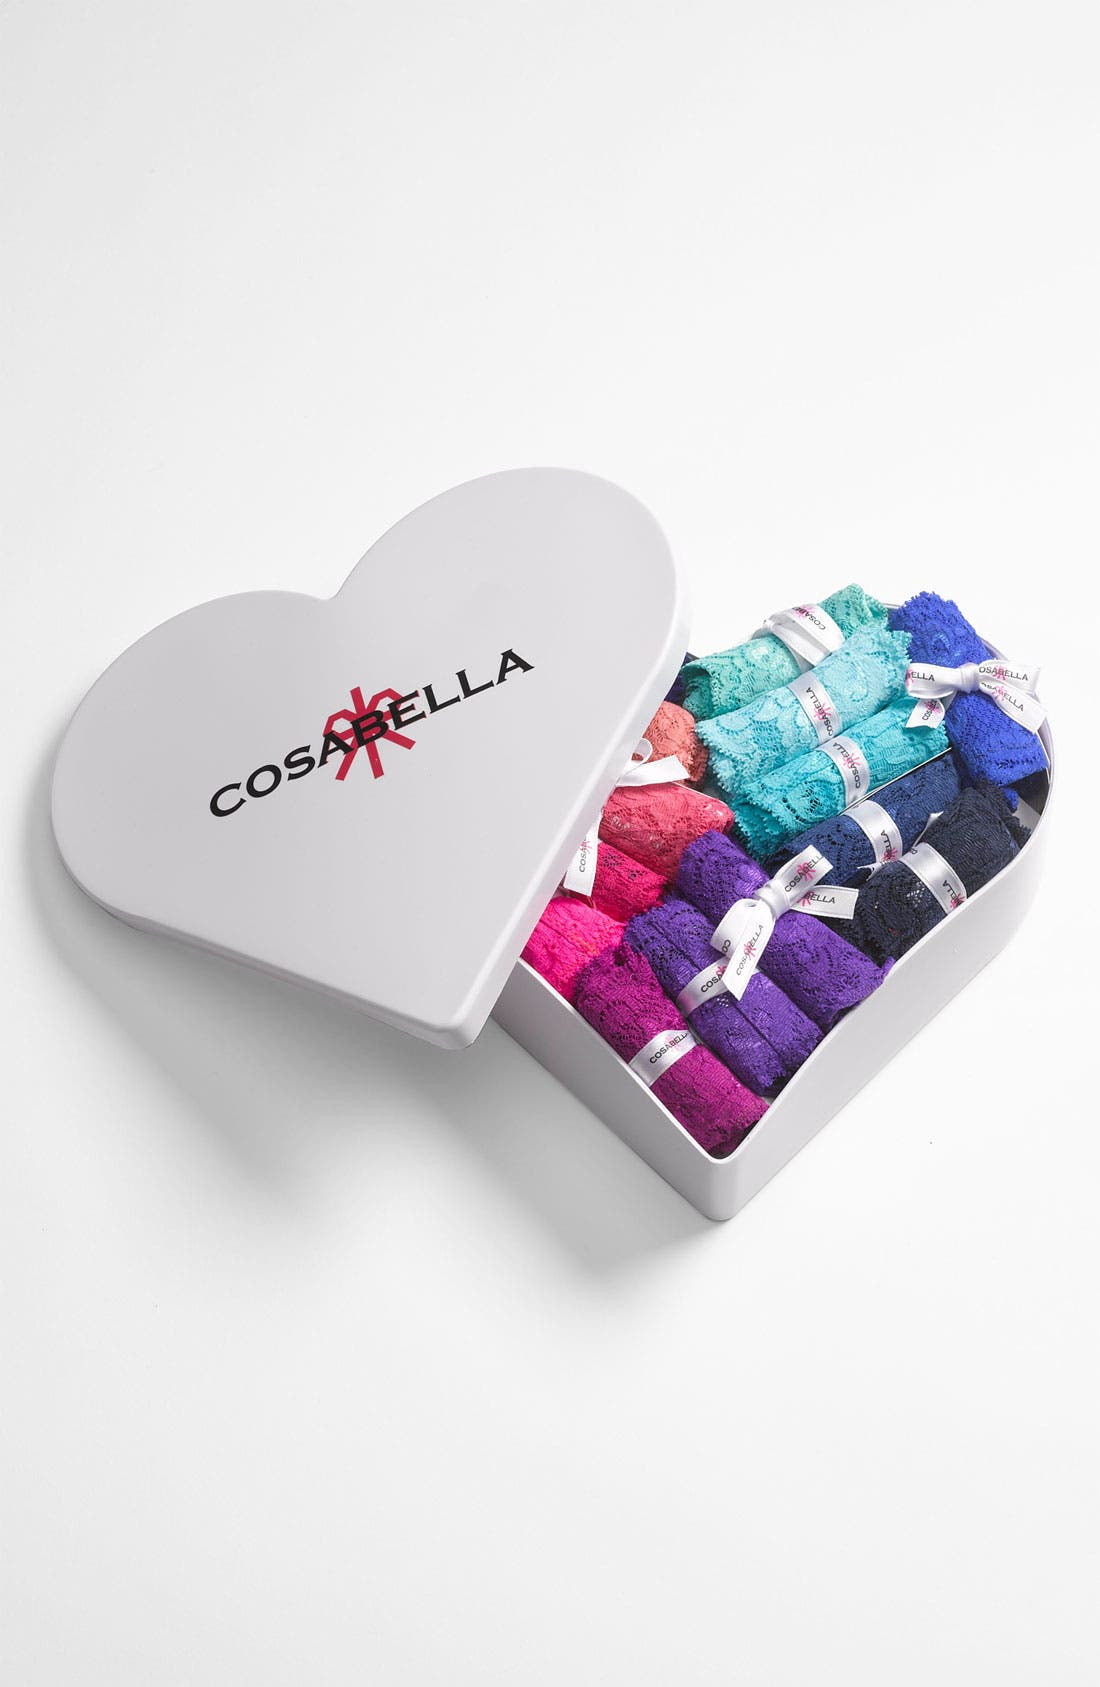 Alternate Image 1 Selected - Cosabella '30 Years of Color Cutie' Low Rise Thong (30-Pack) ($600 Value)